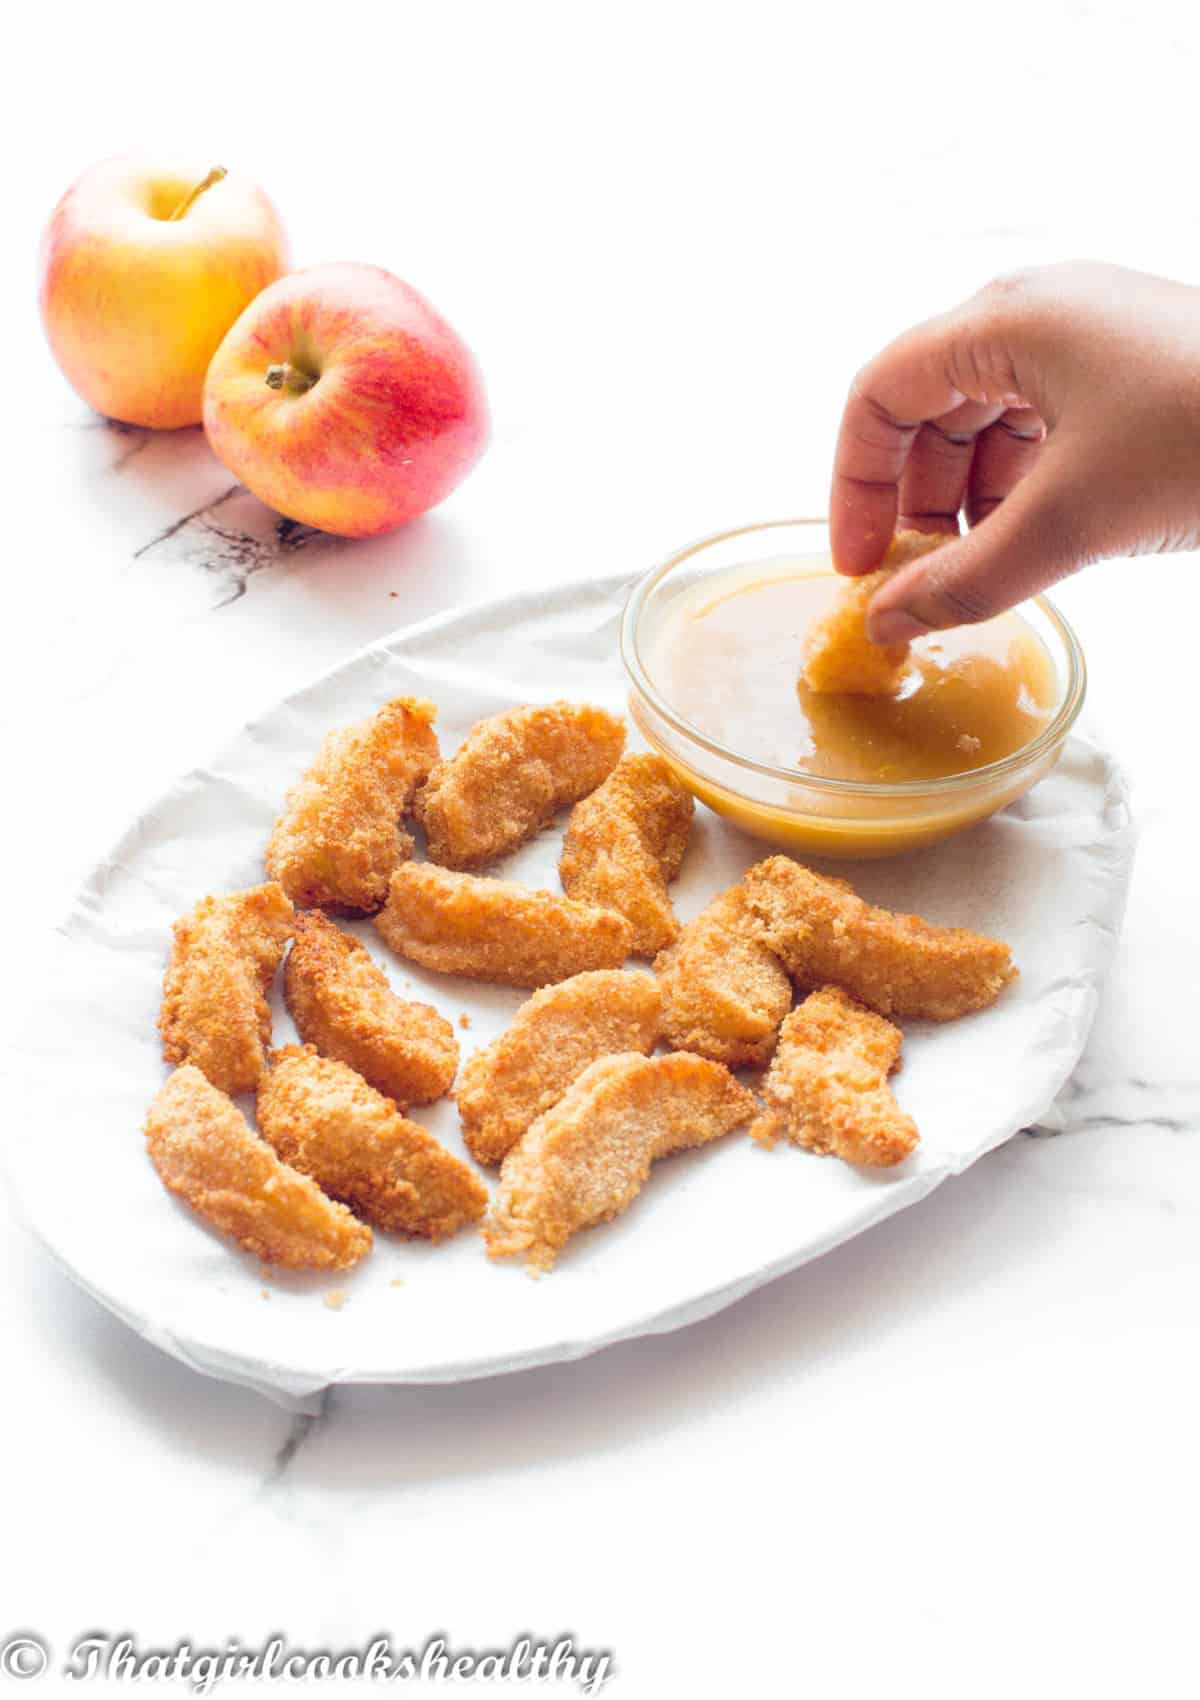 Dipping apple wedge into sauce